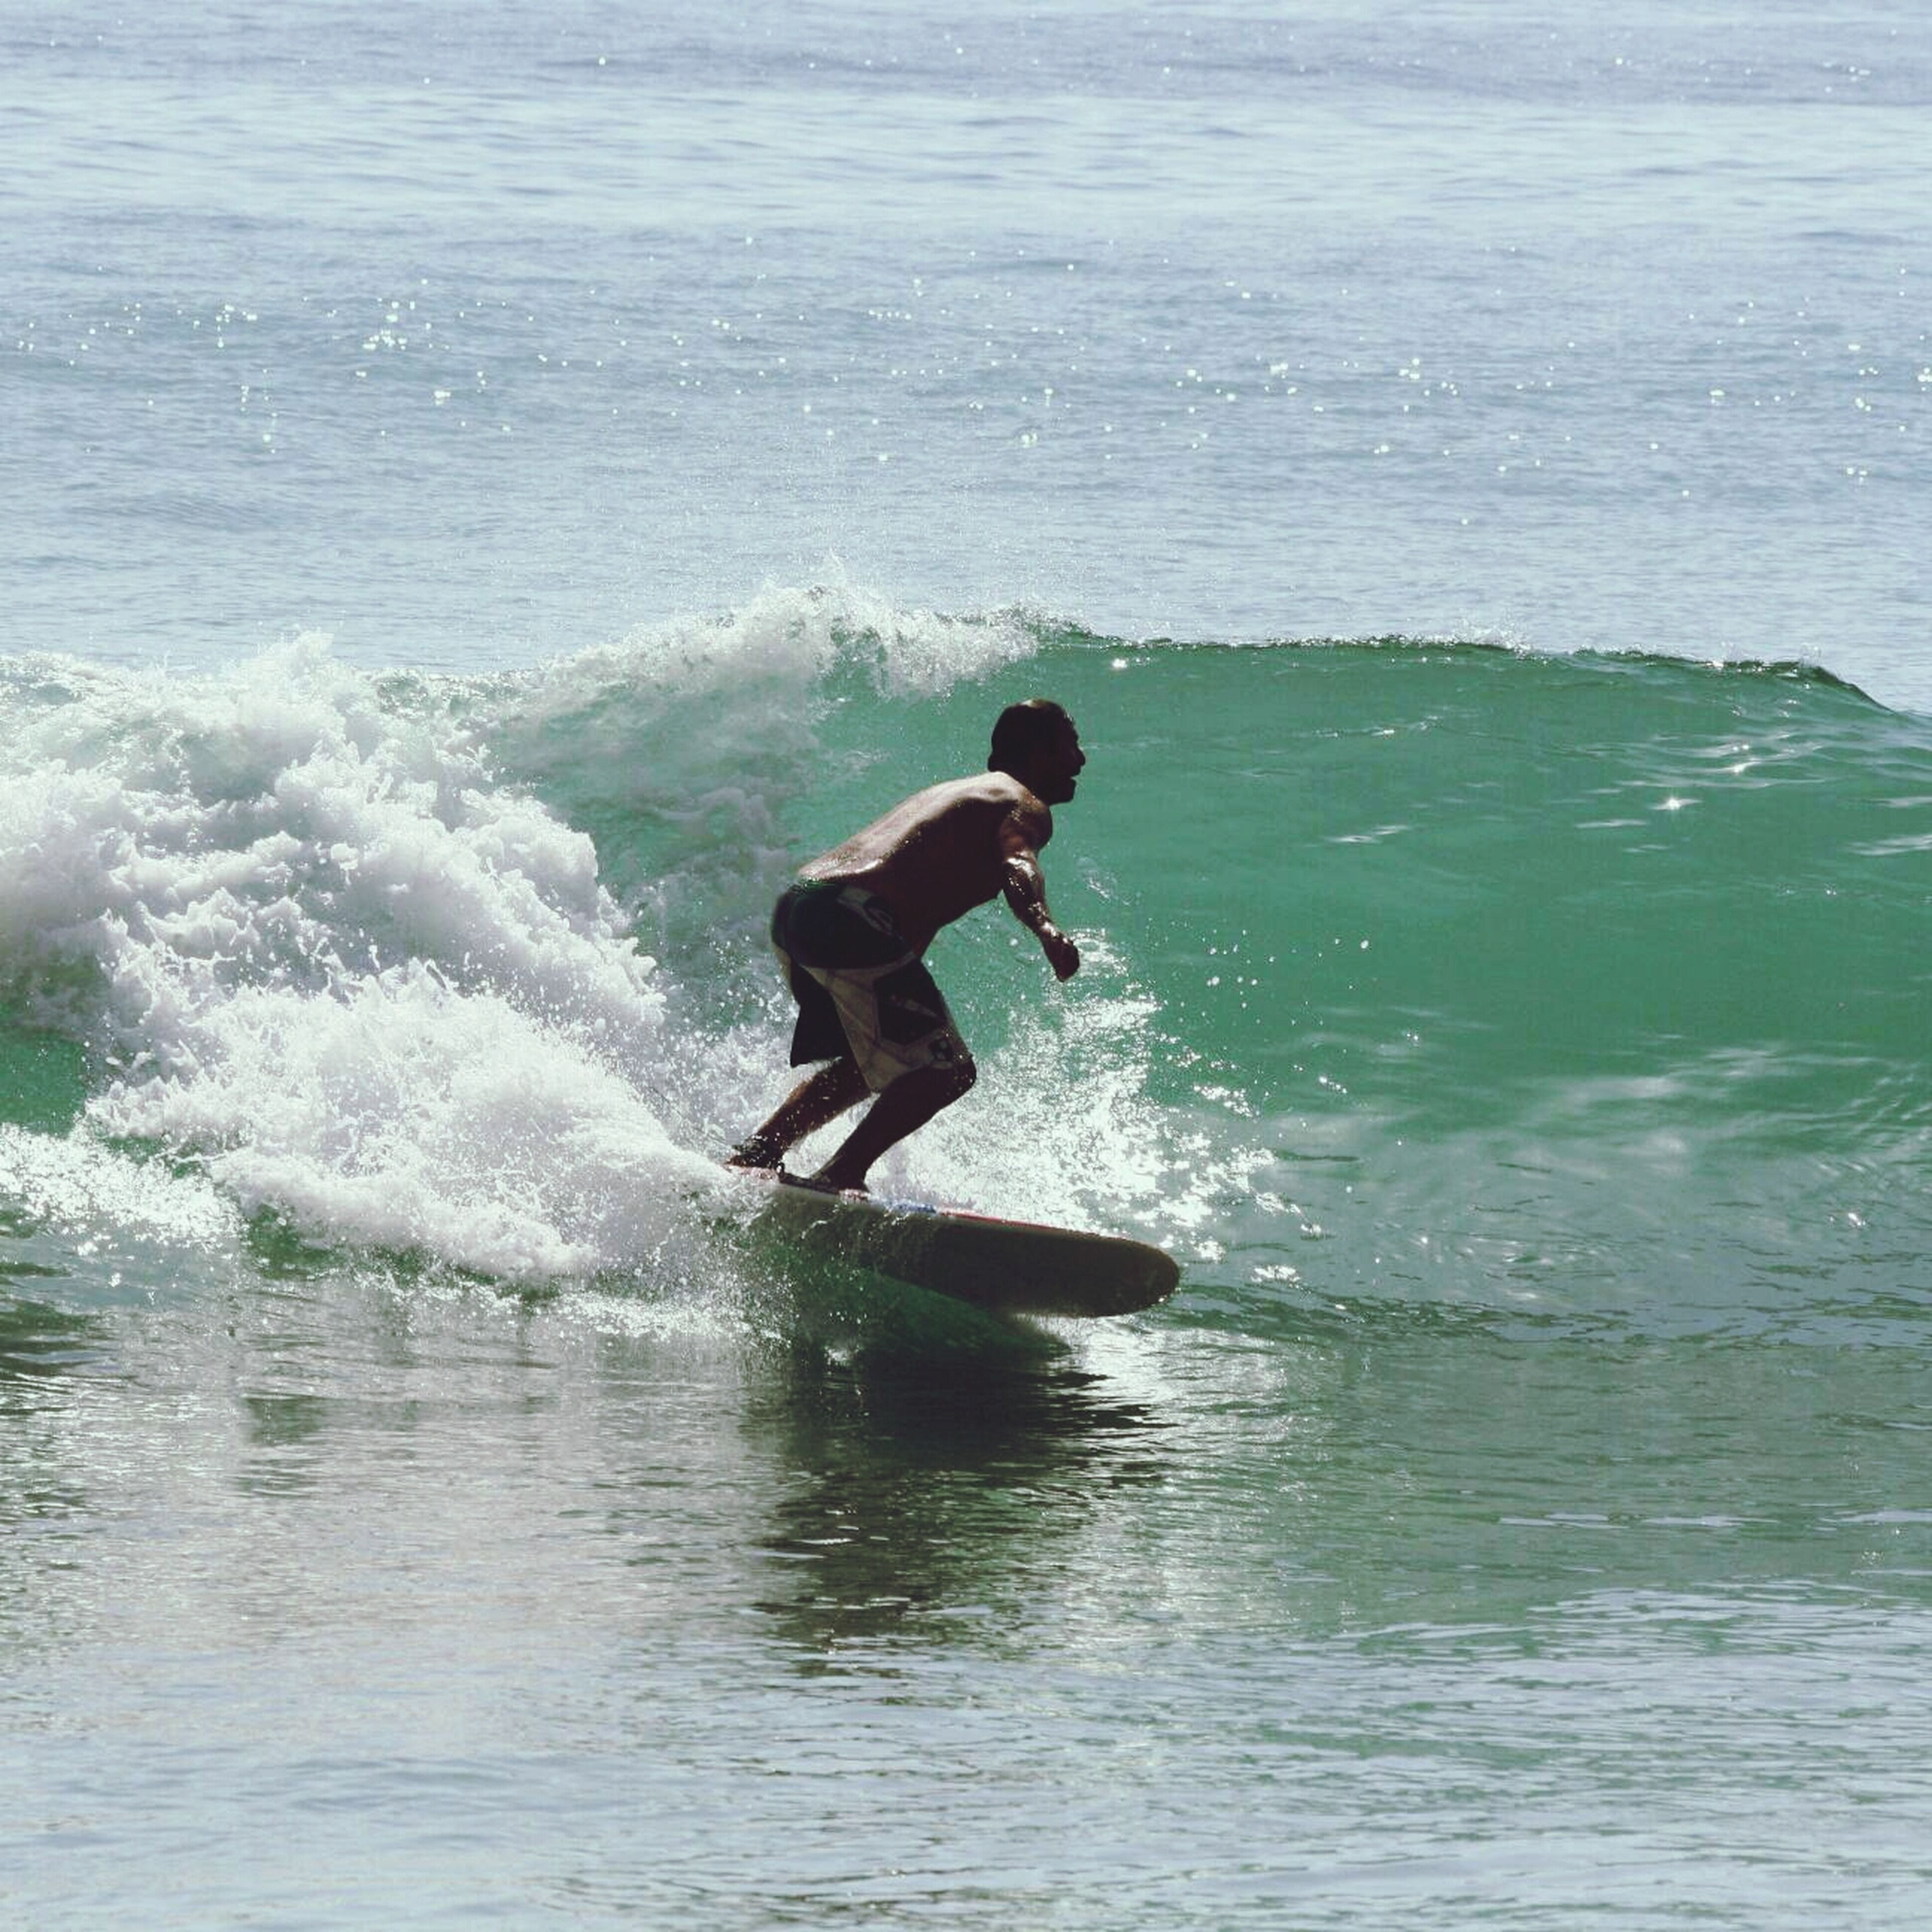 water, sea, wave, motion, waterfront, splashing, leisure activity, surf, lifestyles, men, surfboard, nature, vacations, surfing, sport, full length, adventure, skill